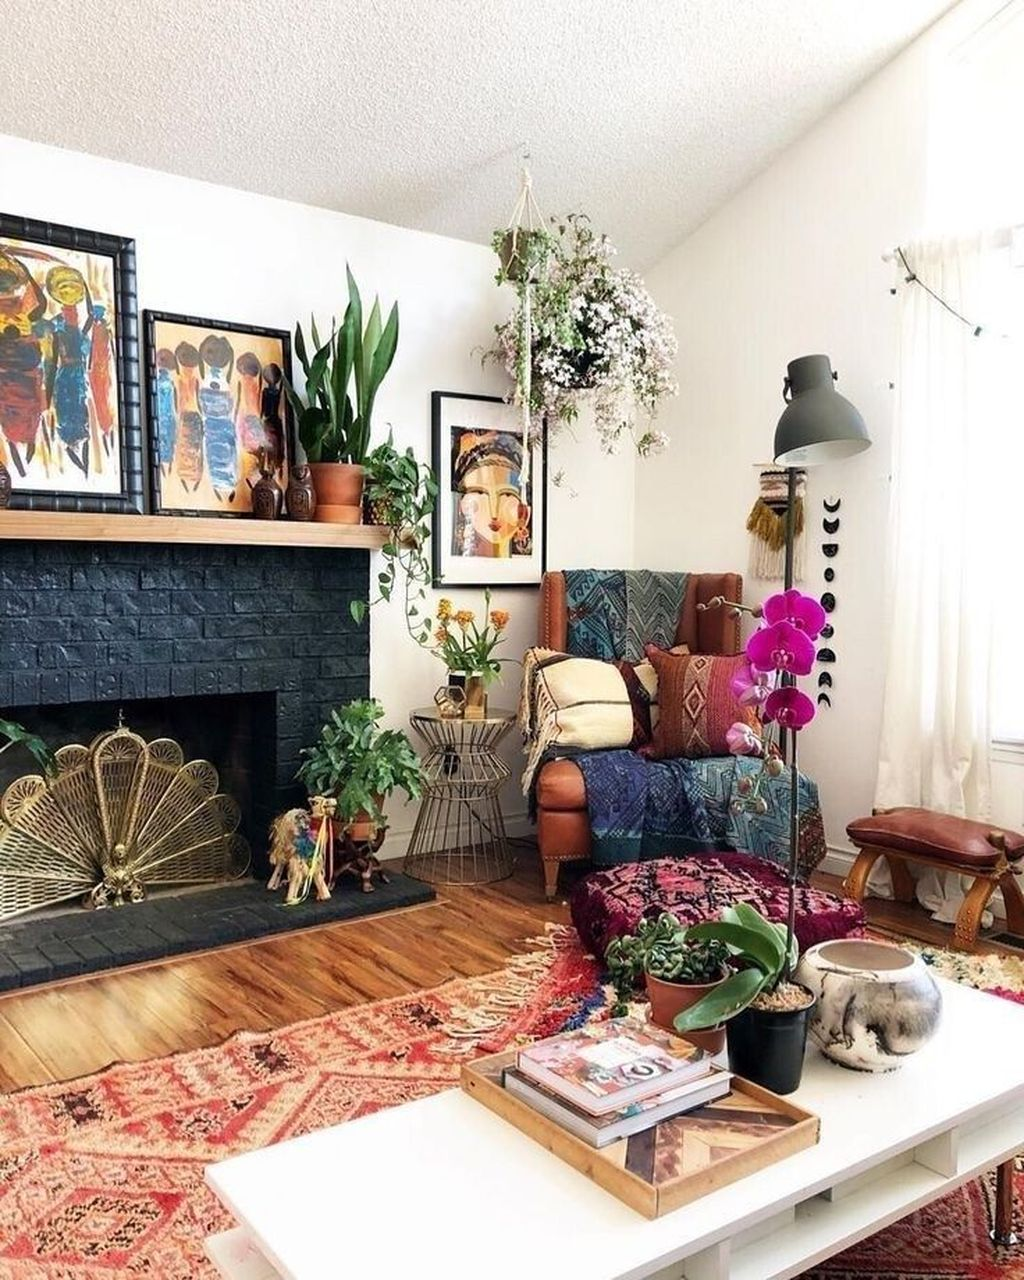 The Best Rustic Bohemian Living Room Decor Ideas 24